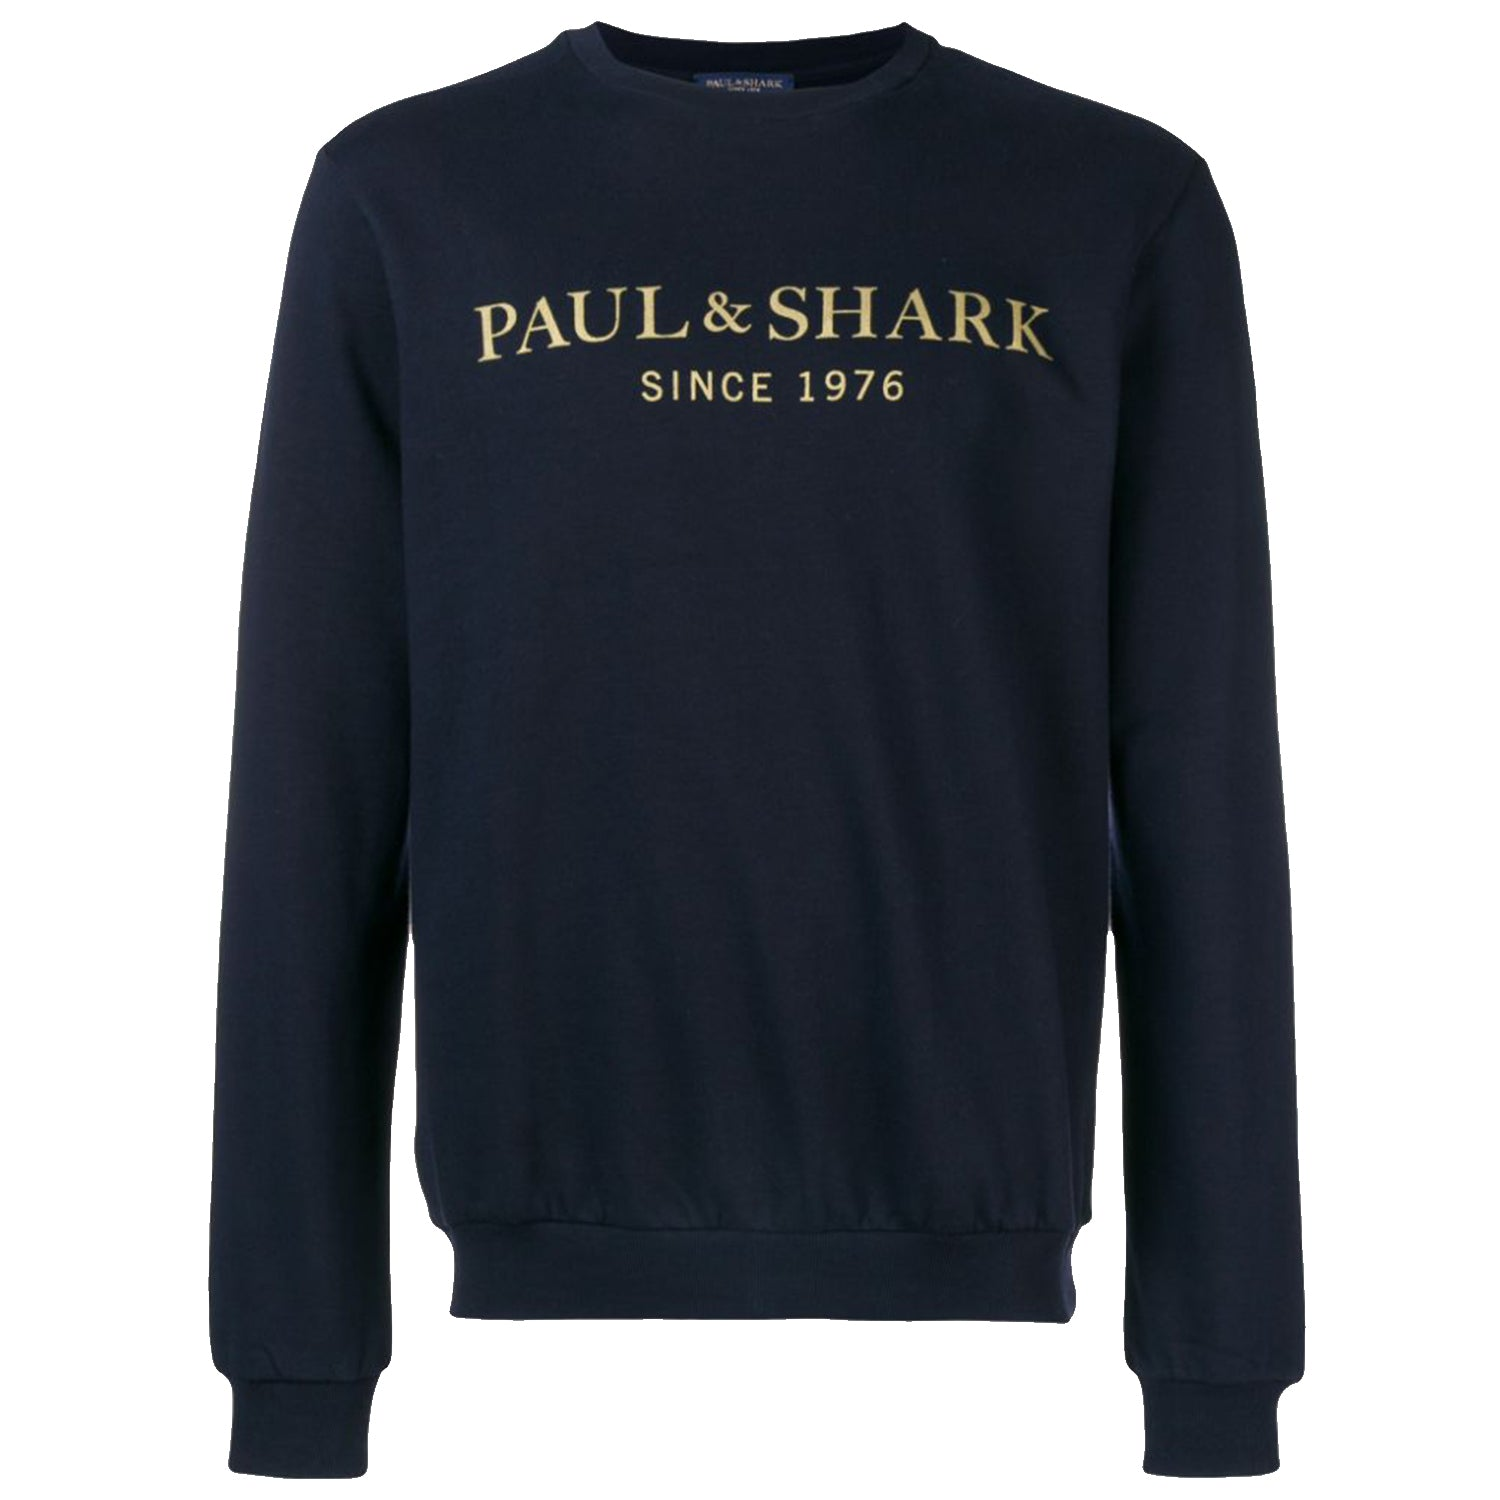 Paul & Shark Front Logo Print Sweatshirt